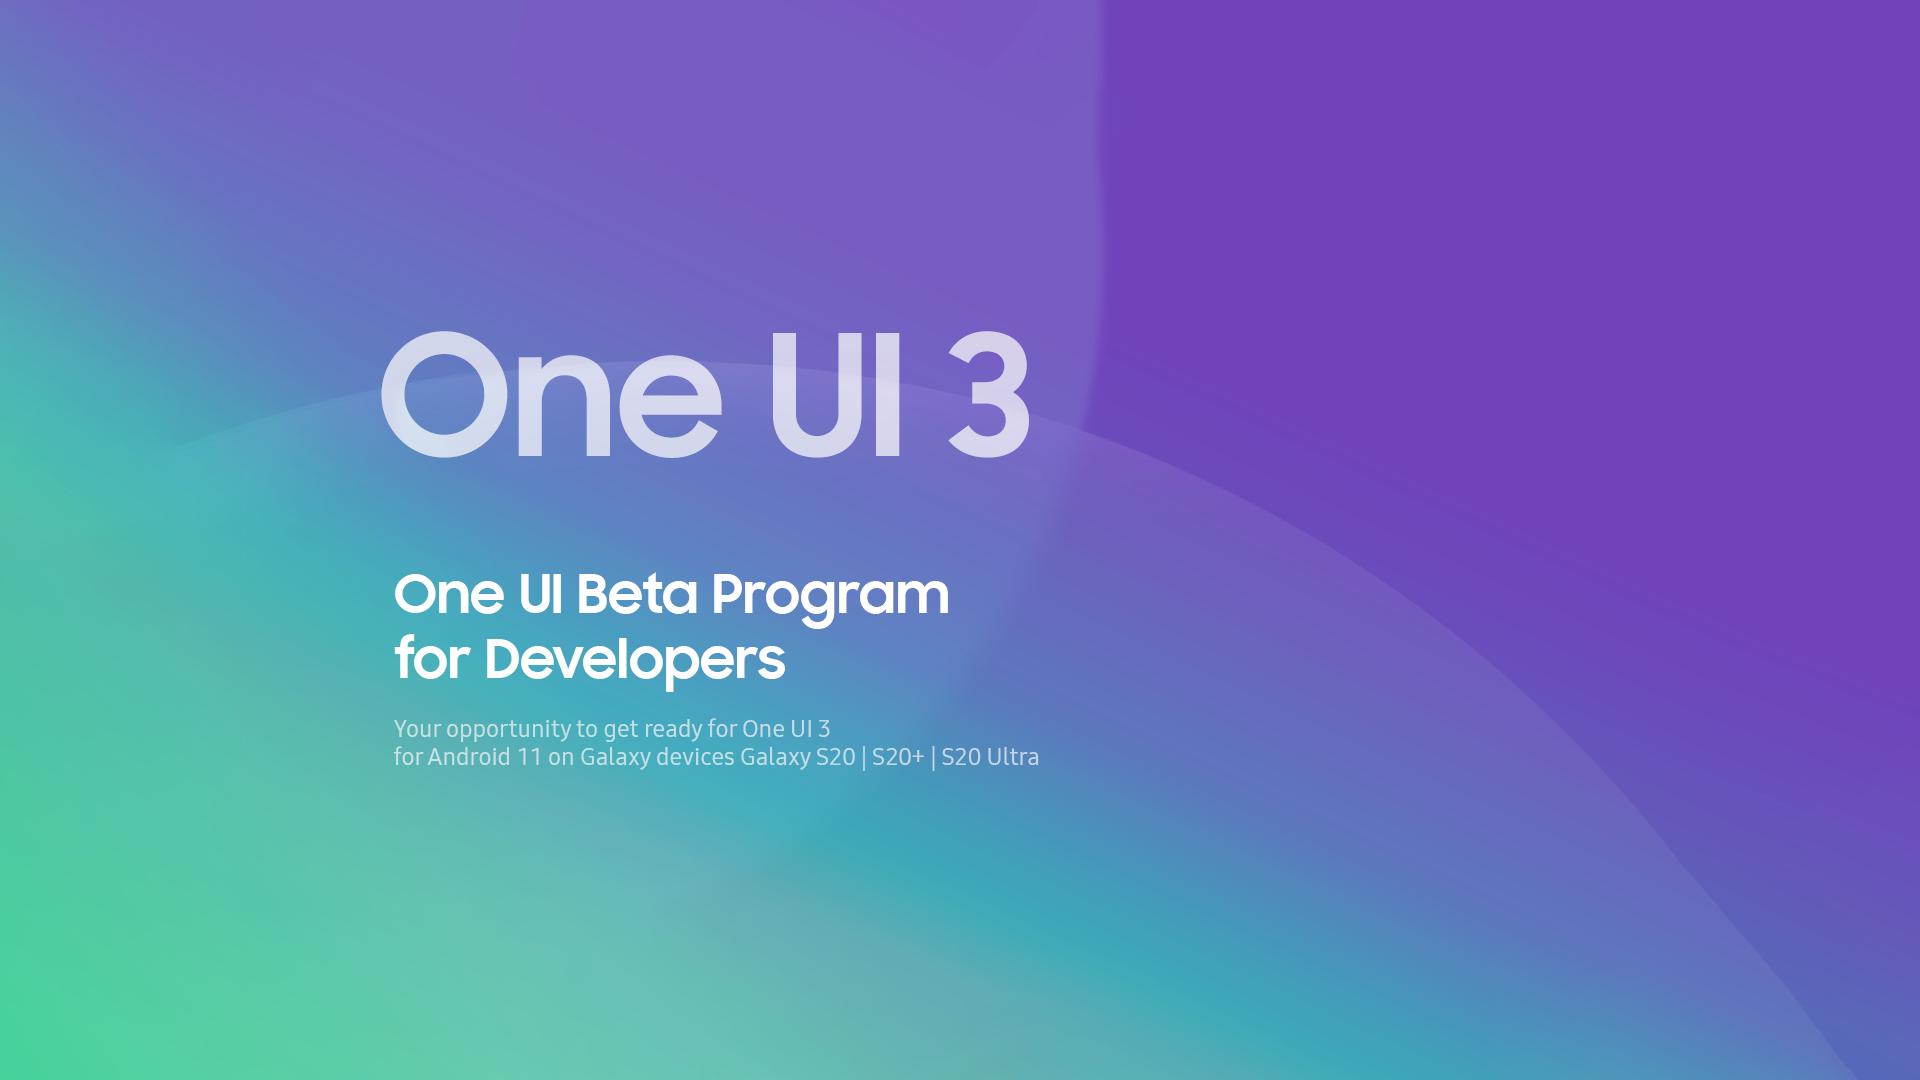 Samsung One UI 3 — based on Android 11 — is now in pre-beta